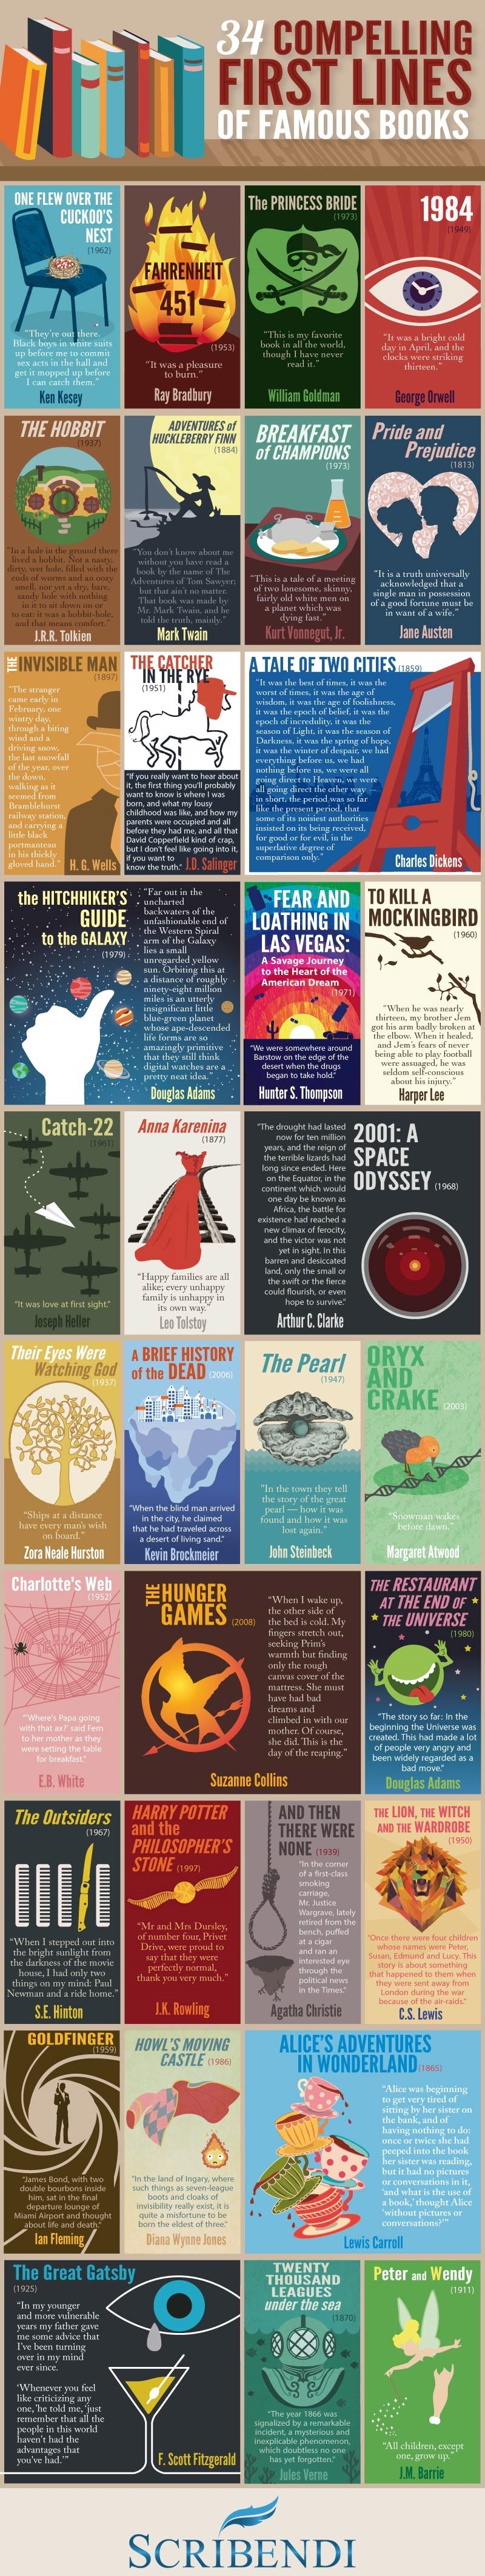 Famous Books Infographic